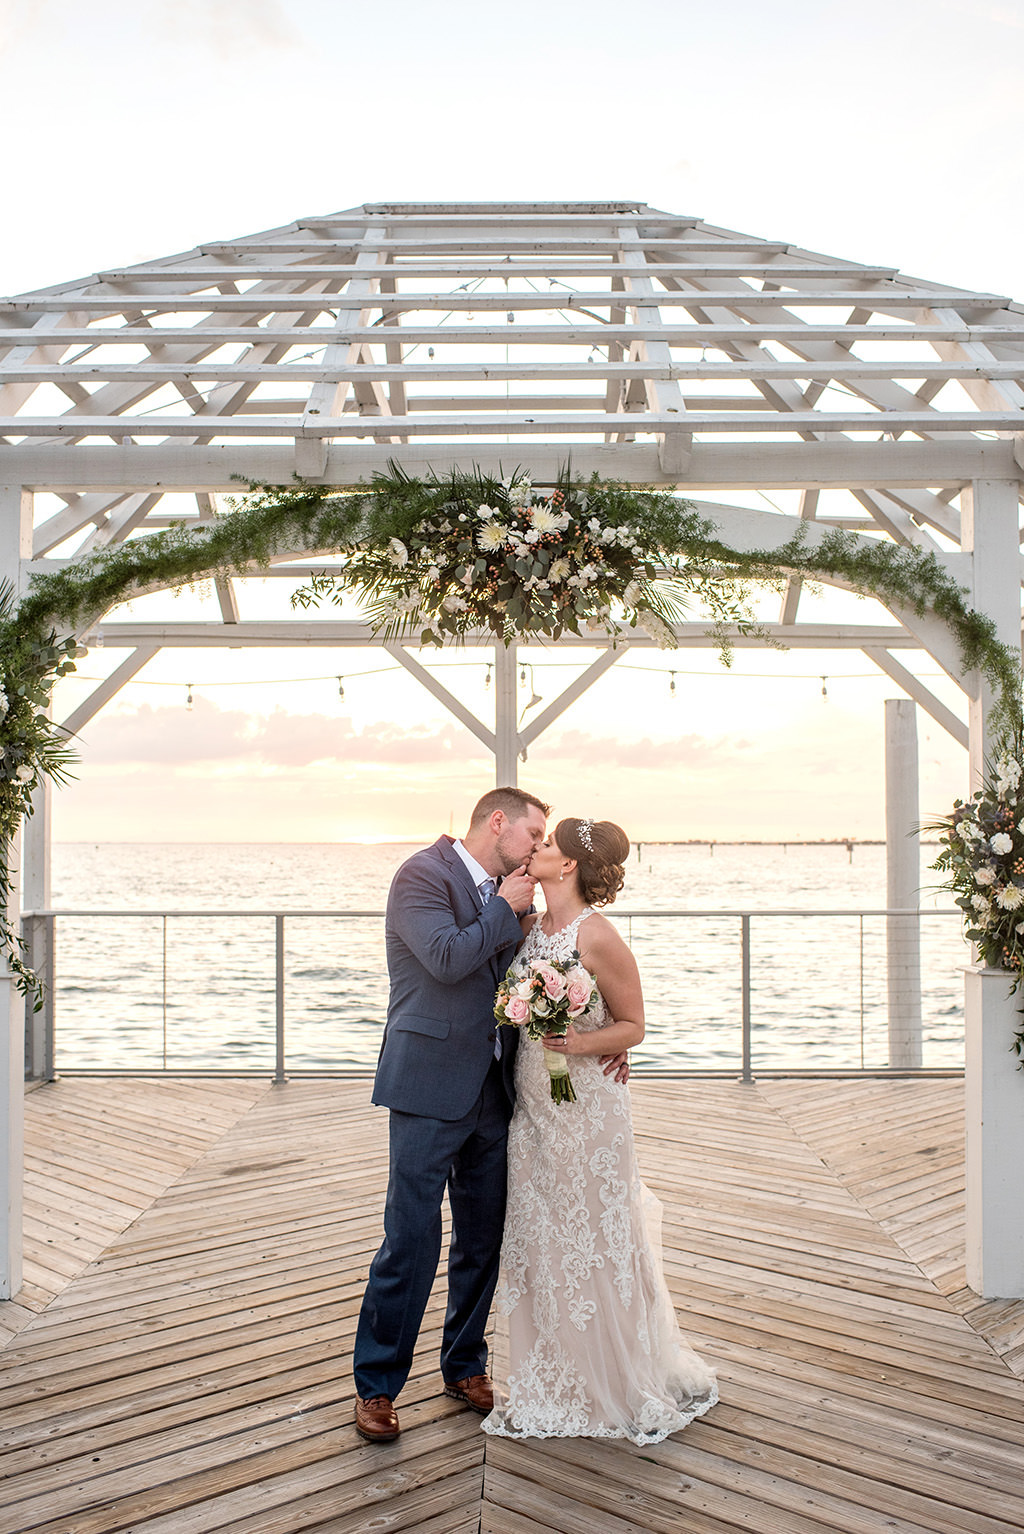 Florida Bride and Groom Kiss Portrait, Just Married After Waterfront Dockside Wedding Ceremony Under Cabana, Nautical Inspired Decor, White, Ivory, Blush Pink, and Green Floral Arch | | Tampa Bay Hotel and Wedding Venue The Godfrey Hotel & Cabanas